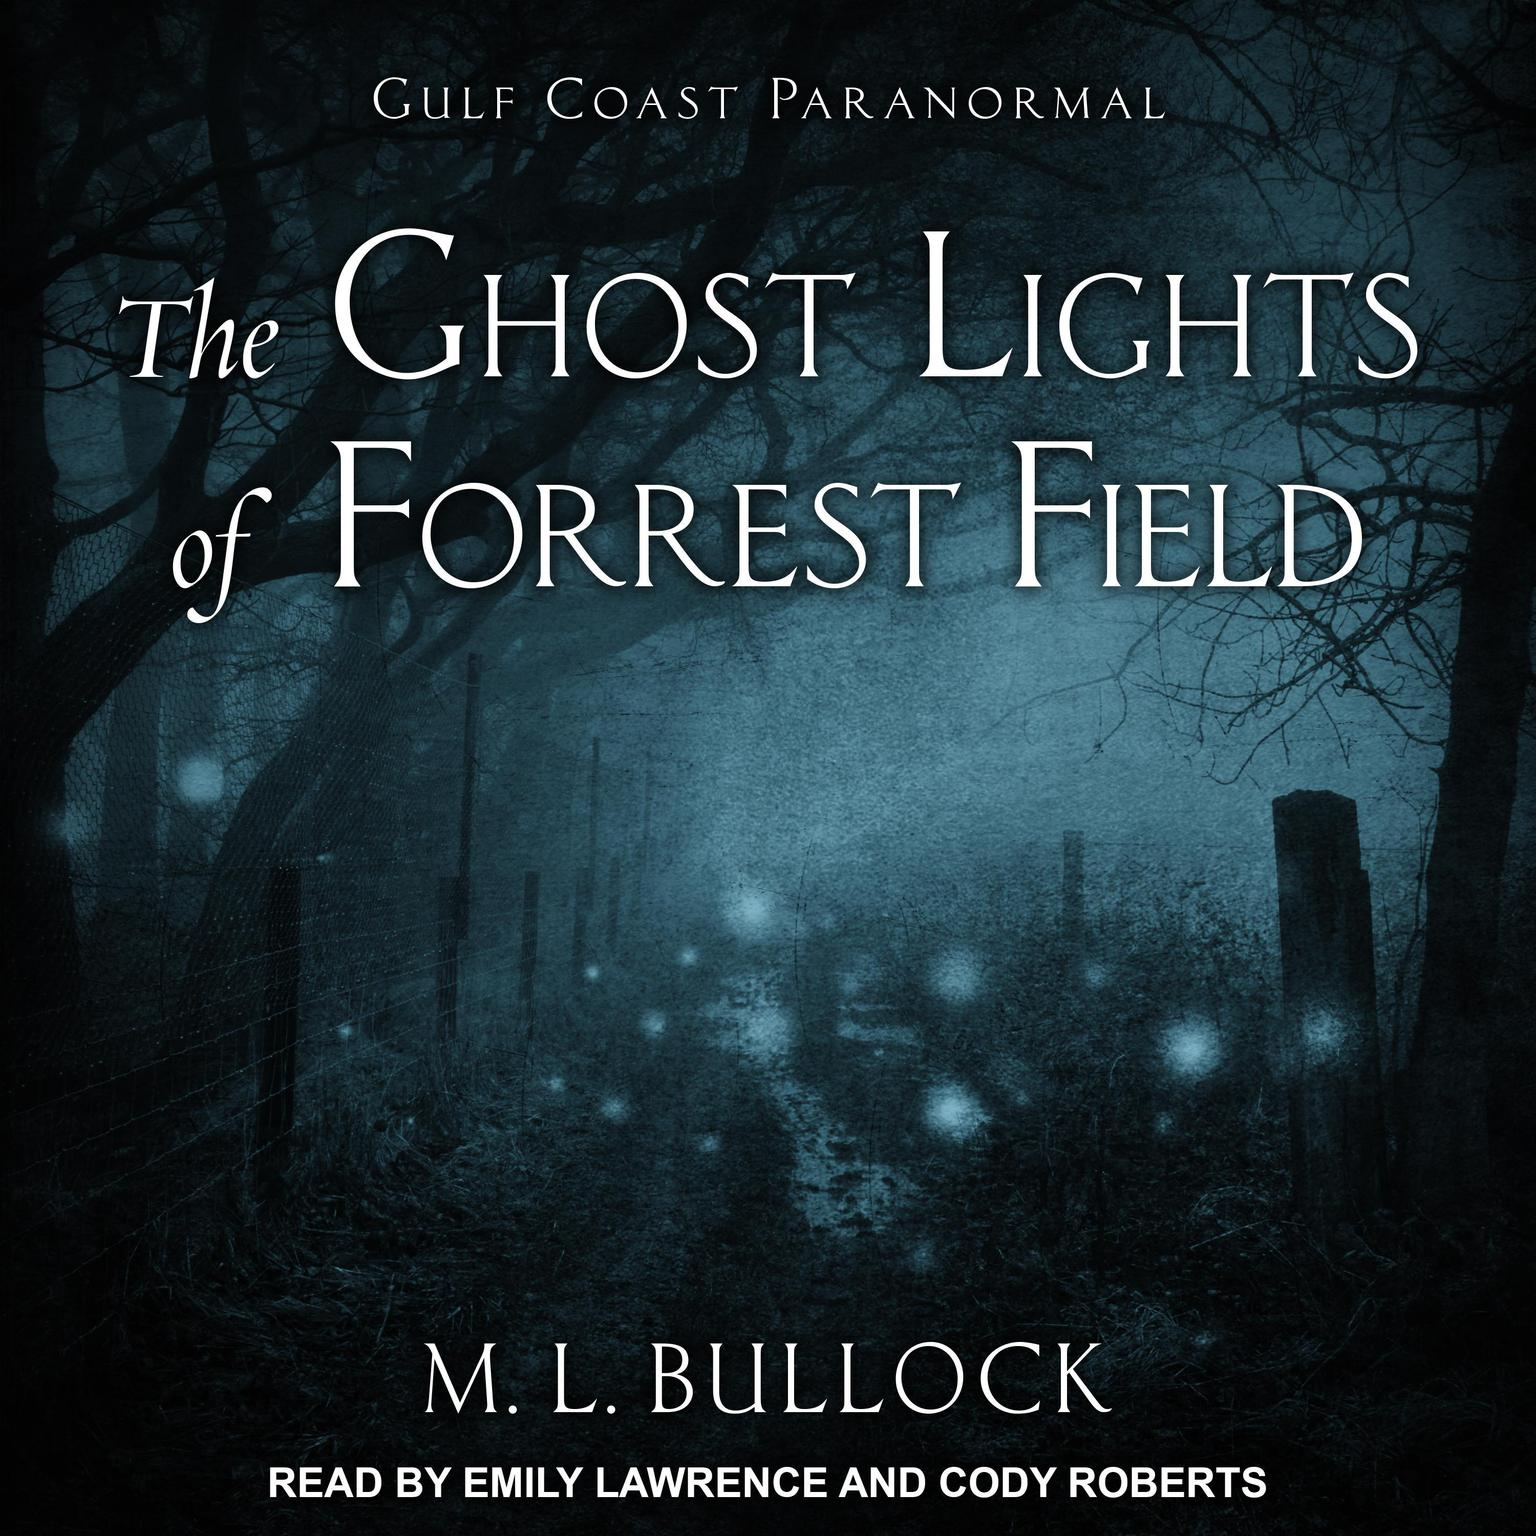 The Ghost Lights of Forrest Field Audiobook, by M. L. Bullock